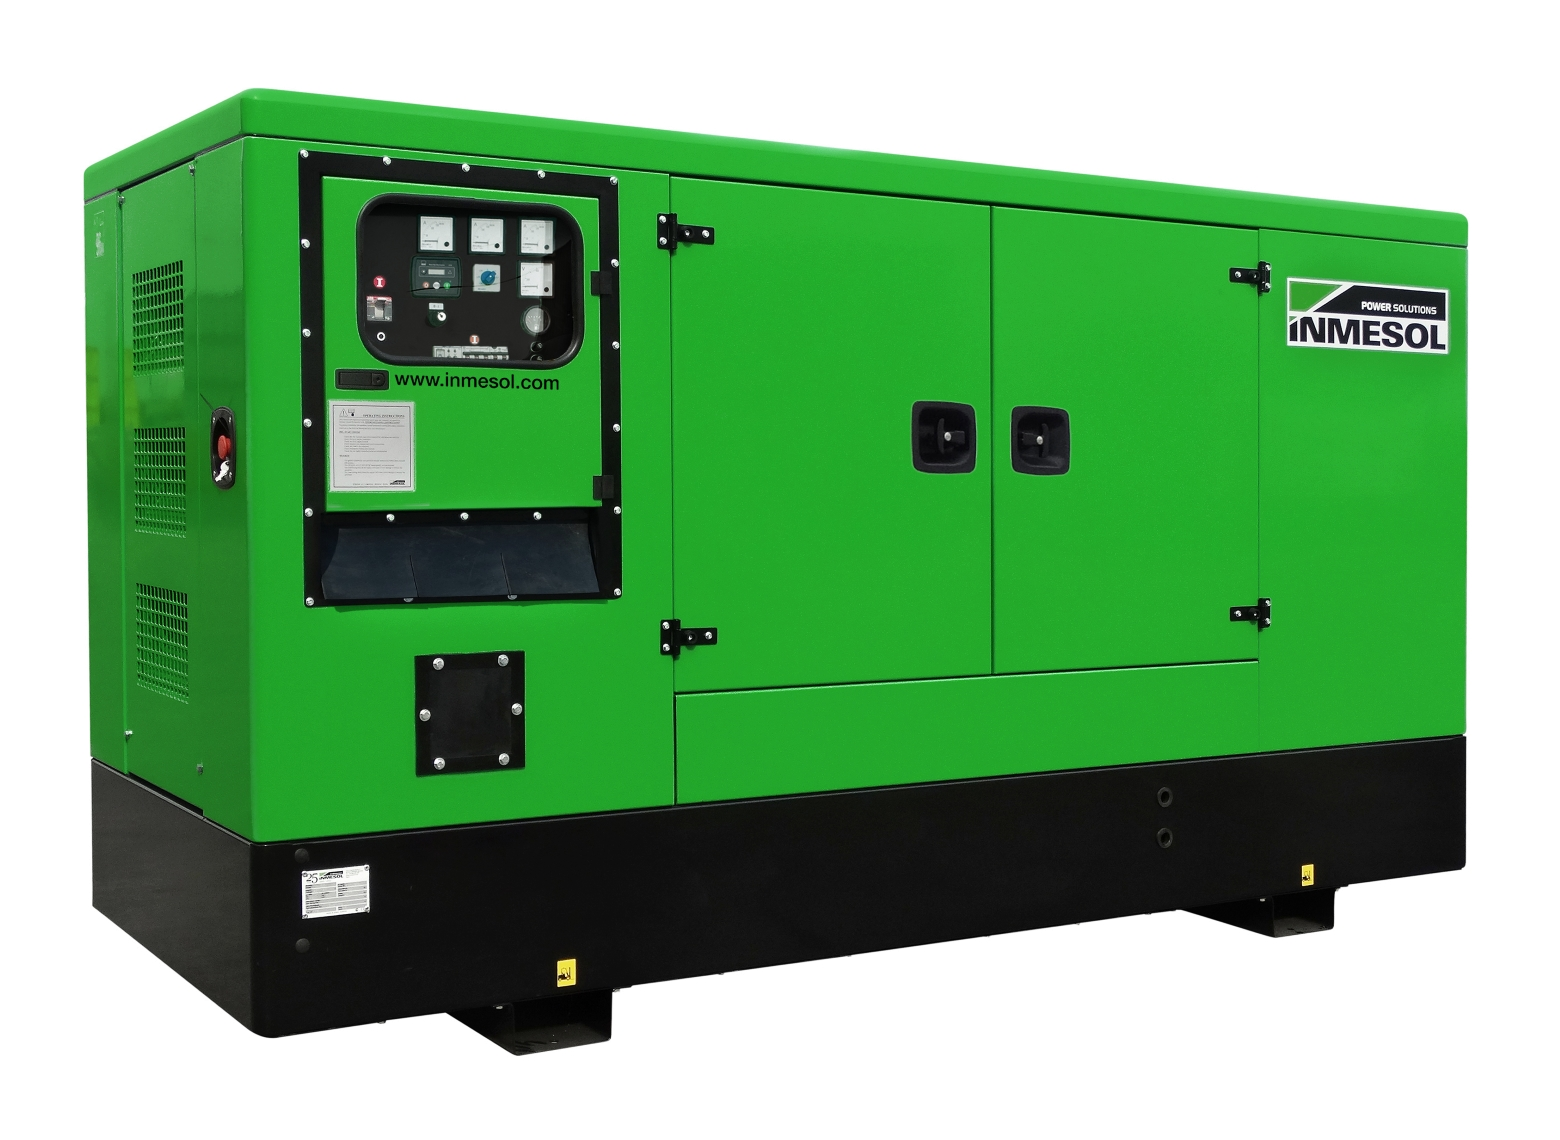 Generator with manual control panel.II-190 - FPT - N67TM4 - 1.500 R.P.M. | 50 Hz